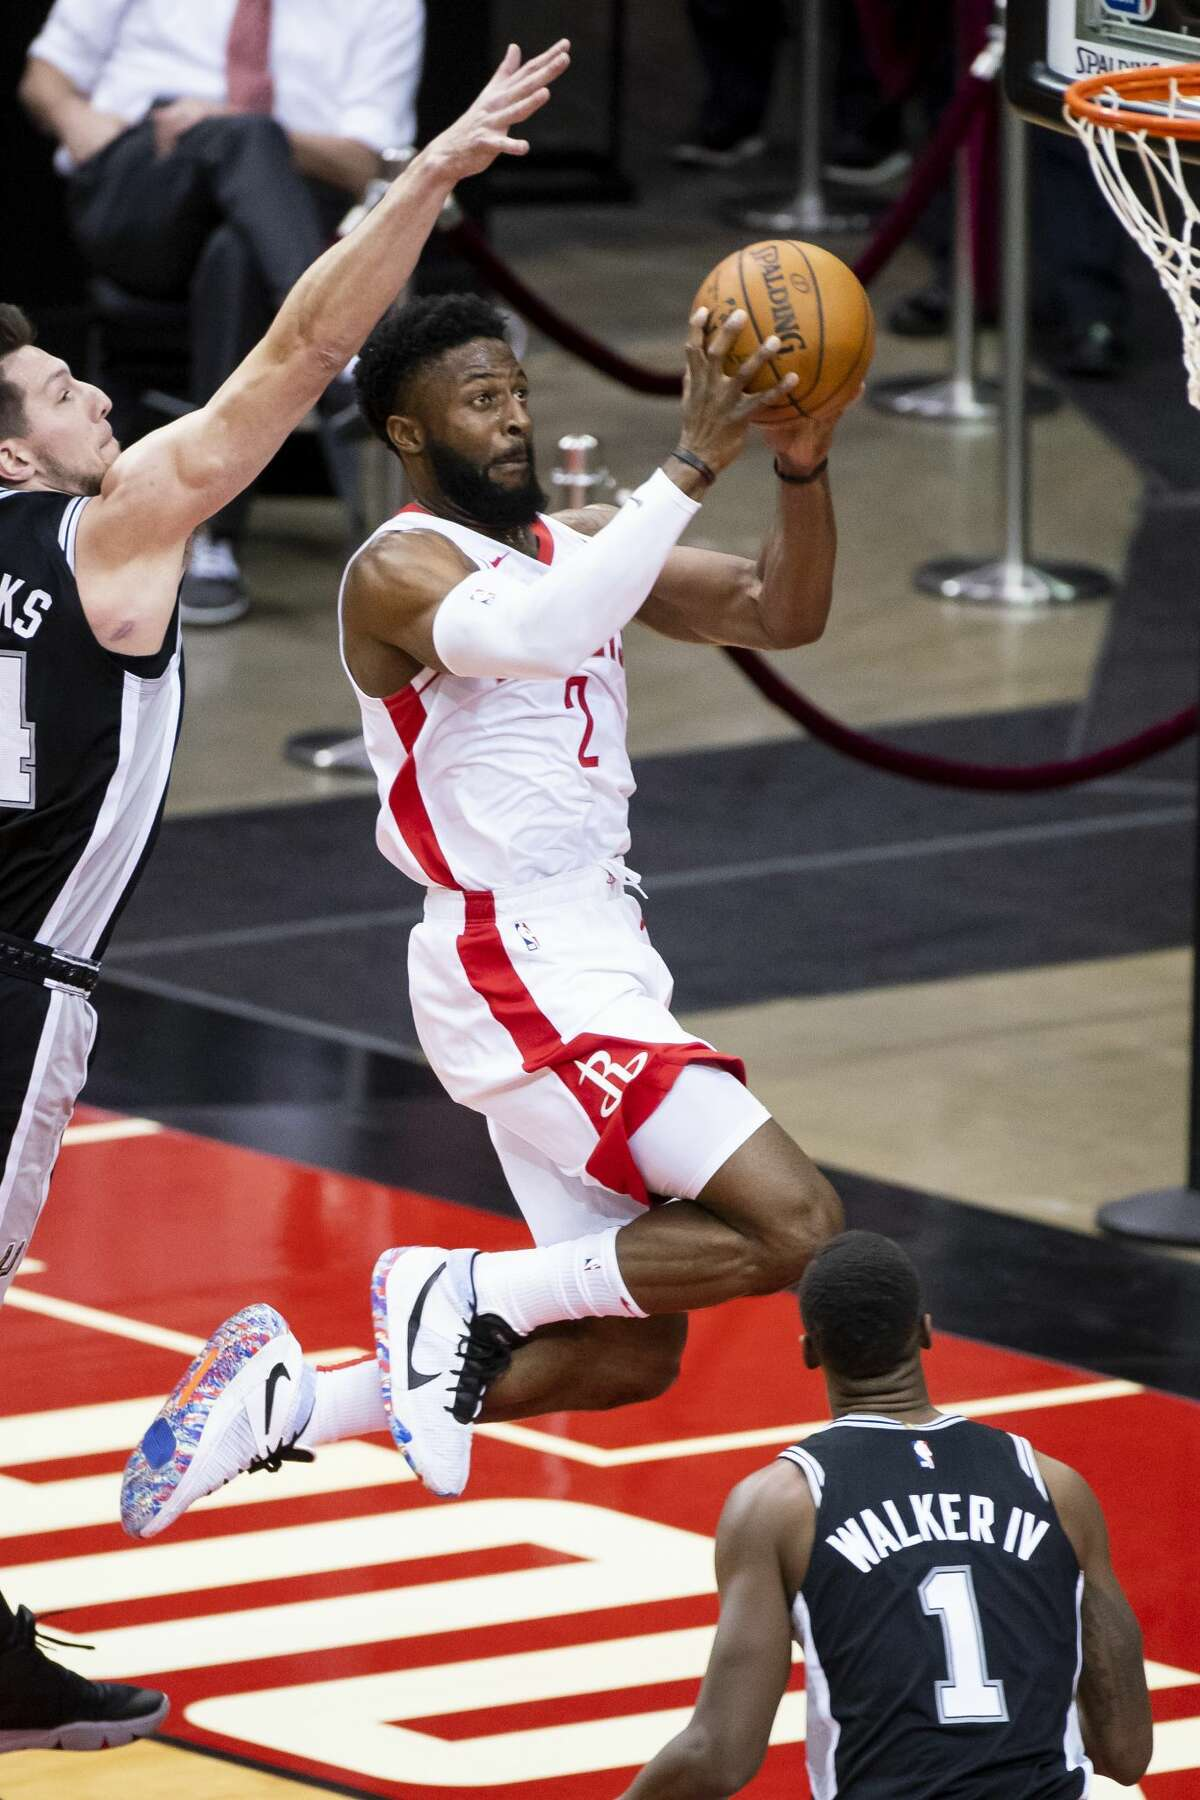 Houston Rockets guard David Nwaba (2) shoots during the fourth quarter of a preseason NBA basketball game between the Houston Rockets and the San Antonio Spurs on Thursday, Dec. 17, 2020, at Toyota Center in Houston.